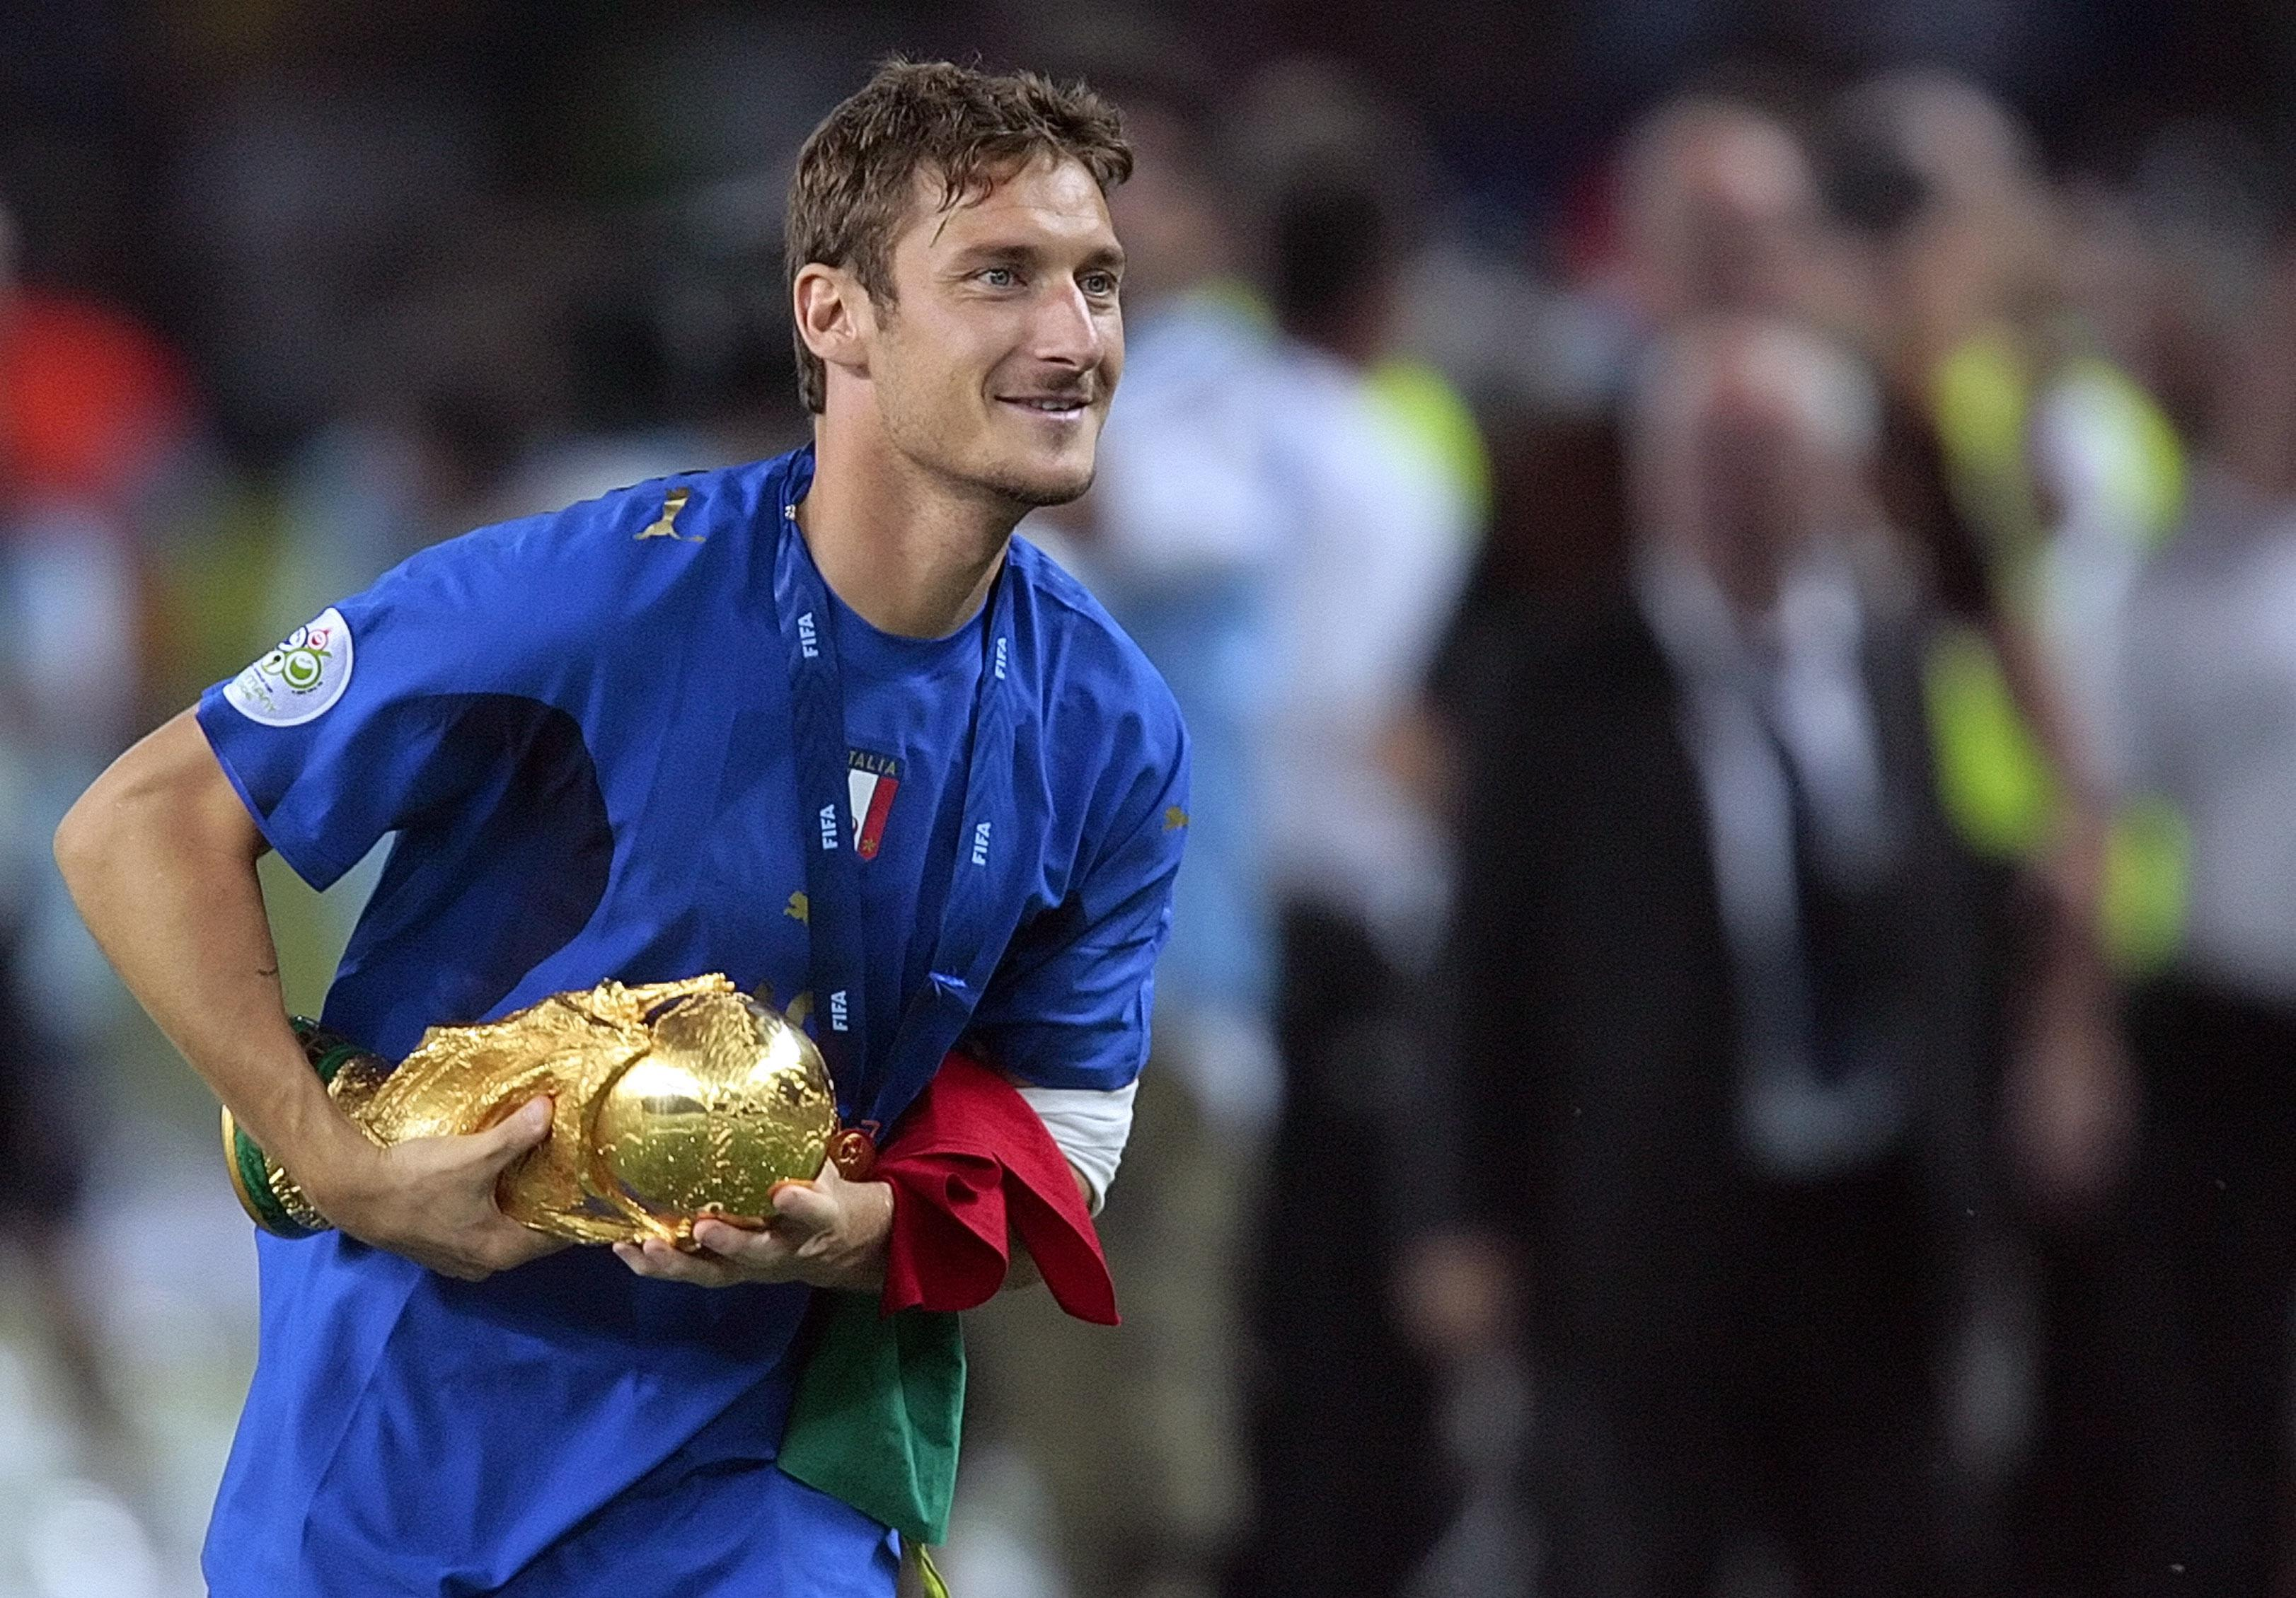 Francesco Totti won the World Cup with Italy in 2006